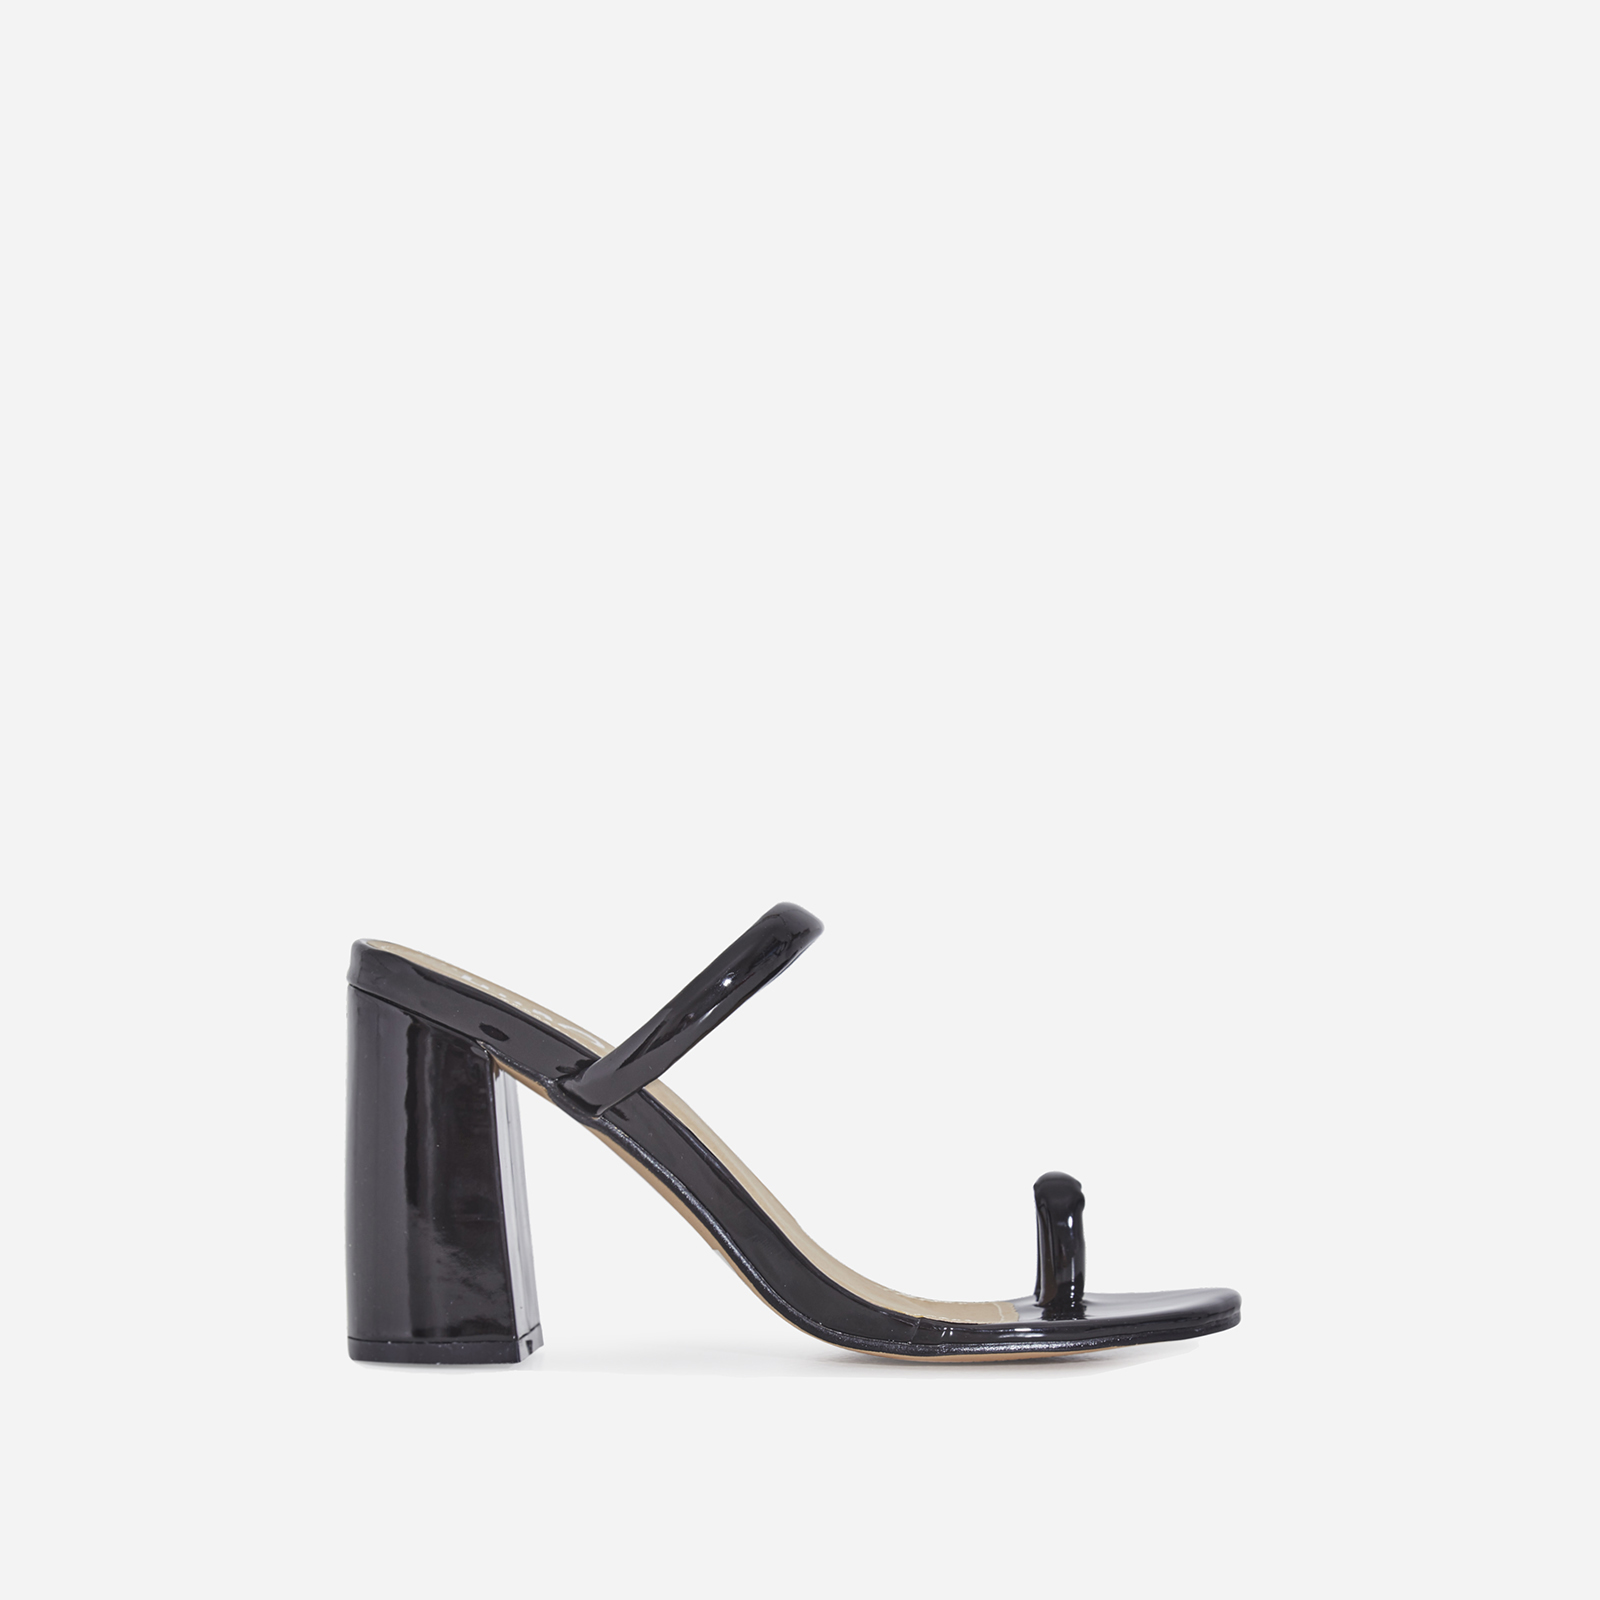 Kourt Toe Strap Black Heel Mule In Black Patent